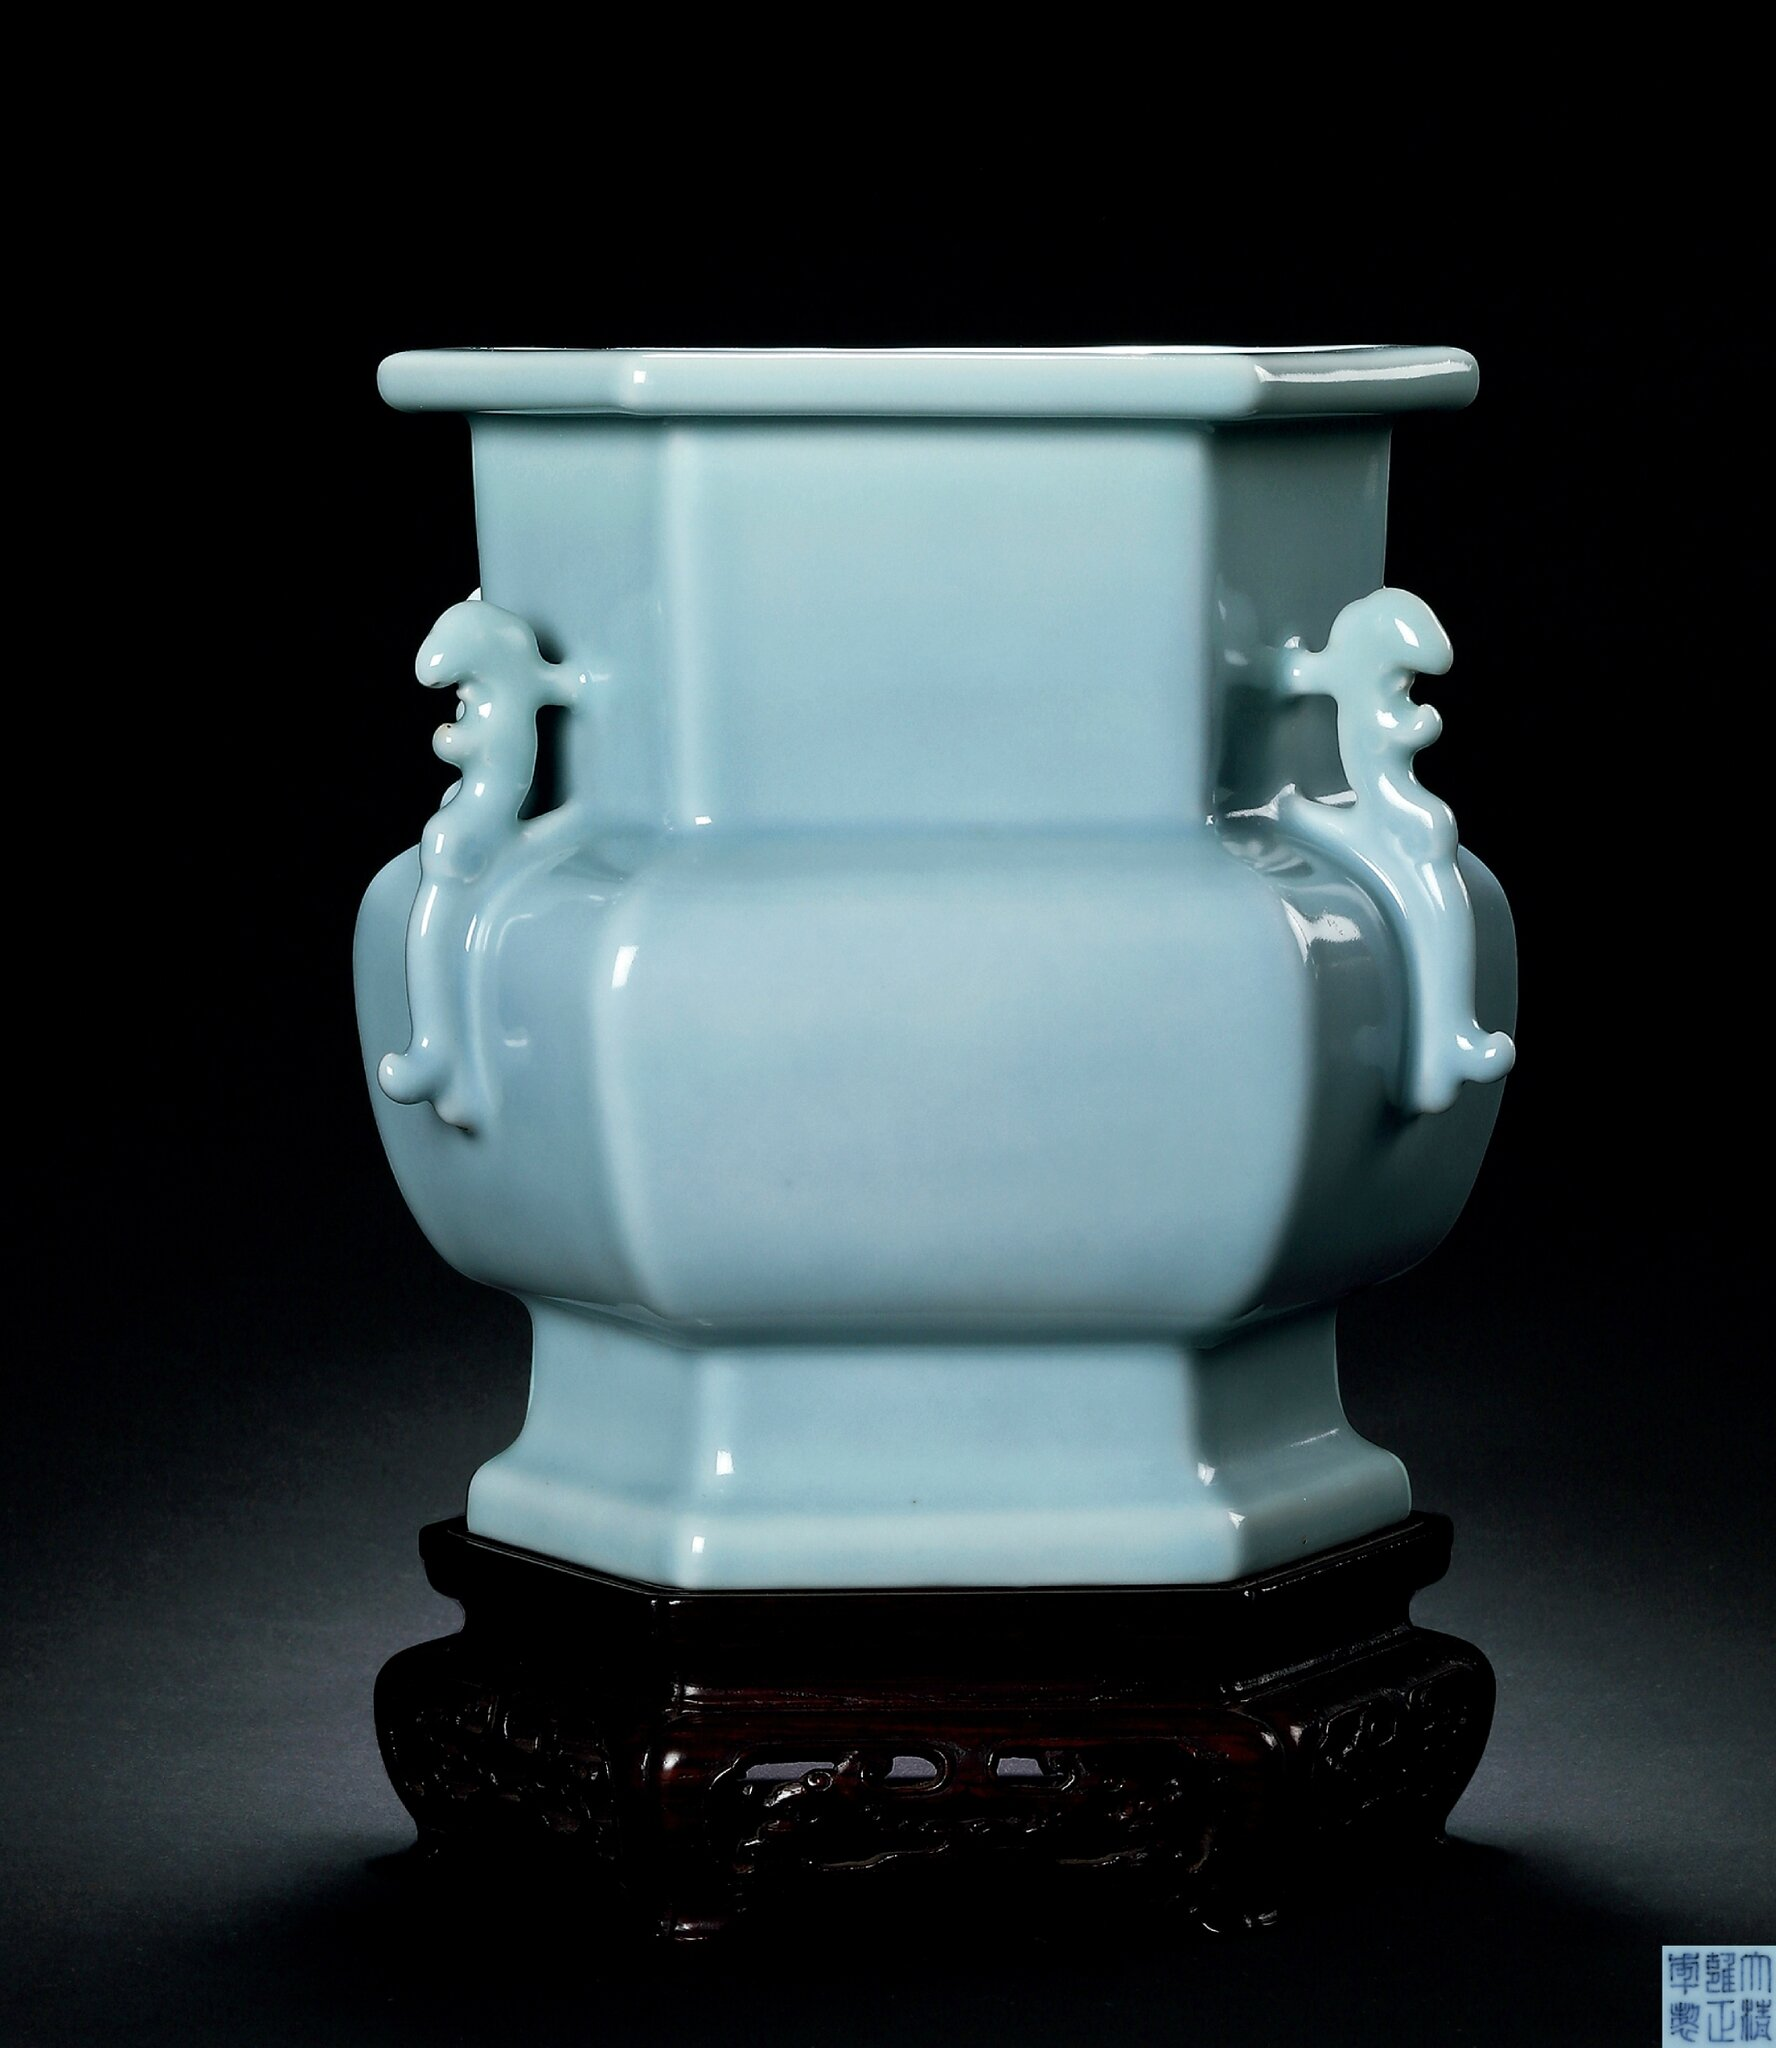 A Magnificent Imperial Blue-Glazed Hexagonal Vase with Four Dragon Handles, Mark and Period of Yongzheng, 1723 - 1735